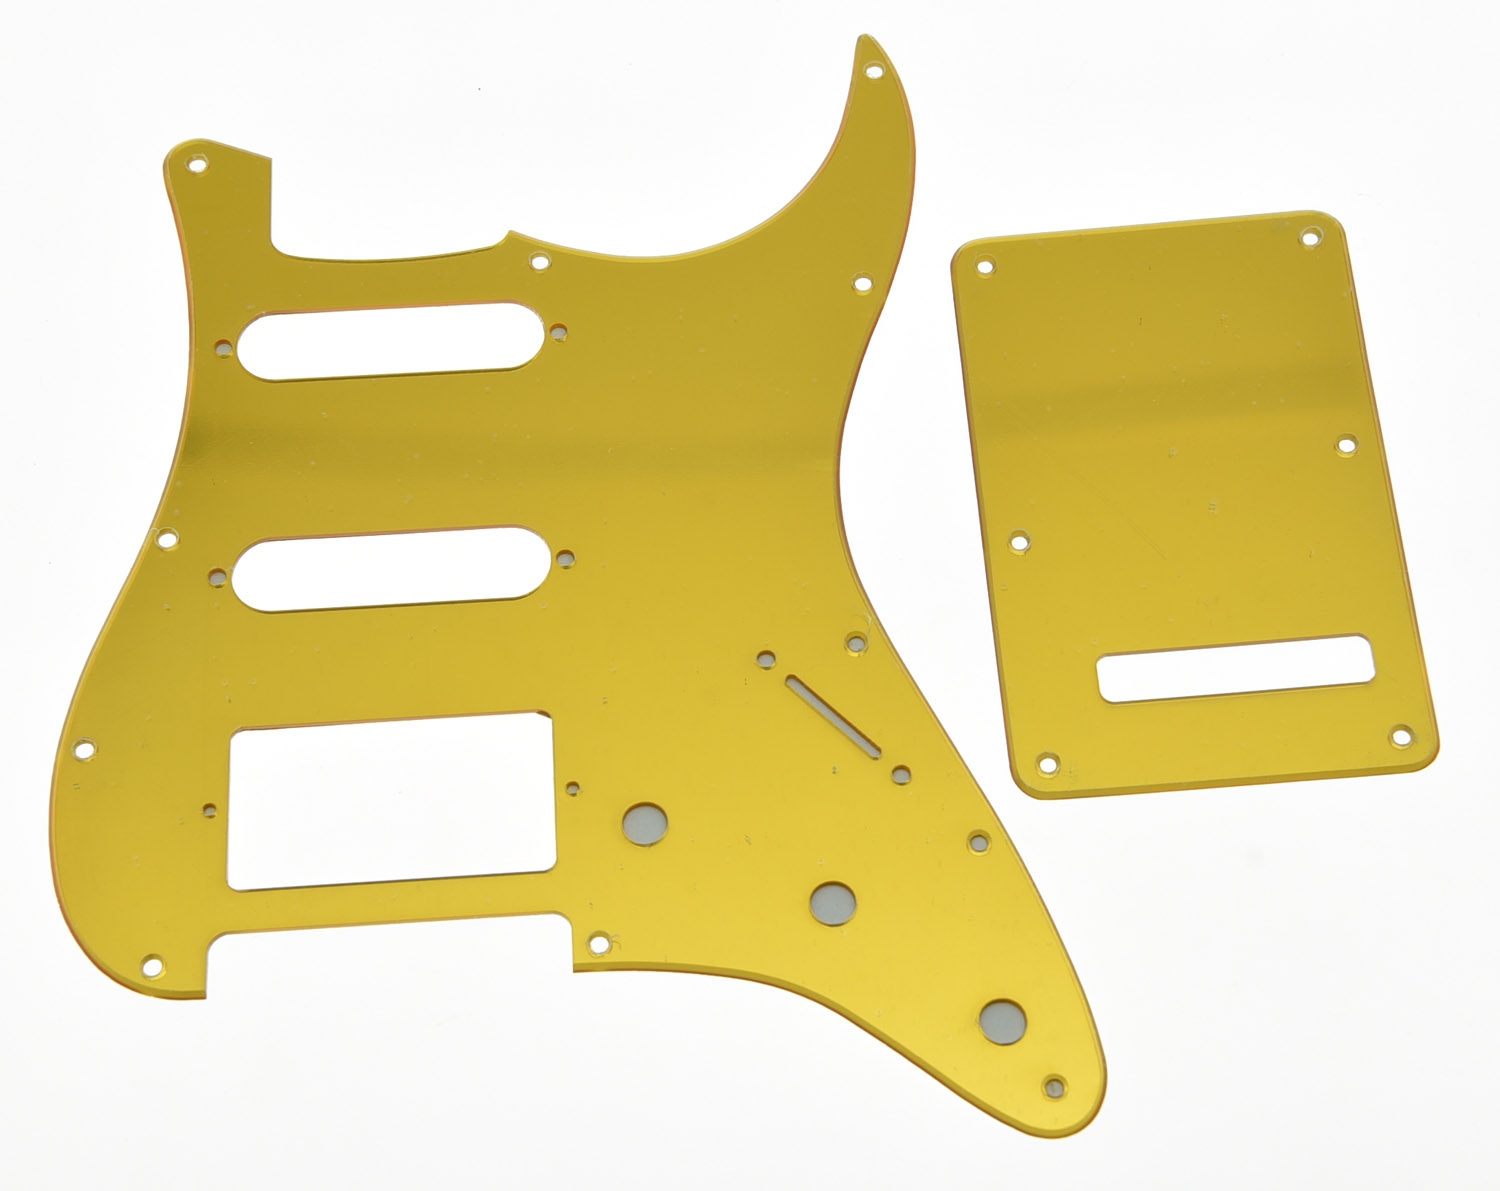 KAISH Gold Mirror HSS ST Guitar Pickguard Back Plate and Screws fits USA ST kaish various colors st style hss guitar pickguard scratch plate trem cover screws